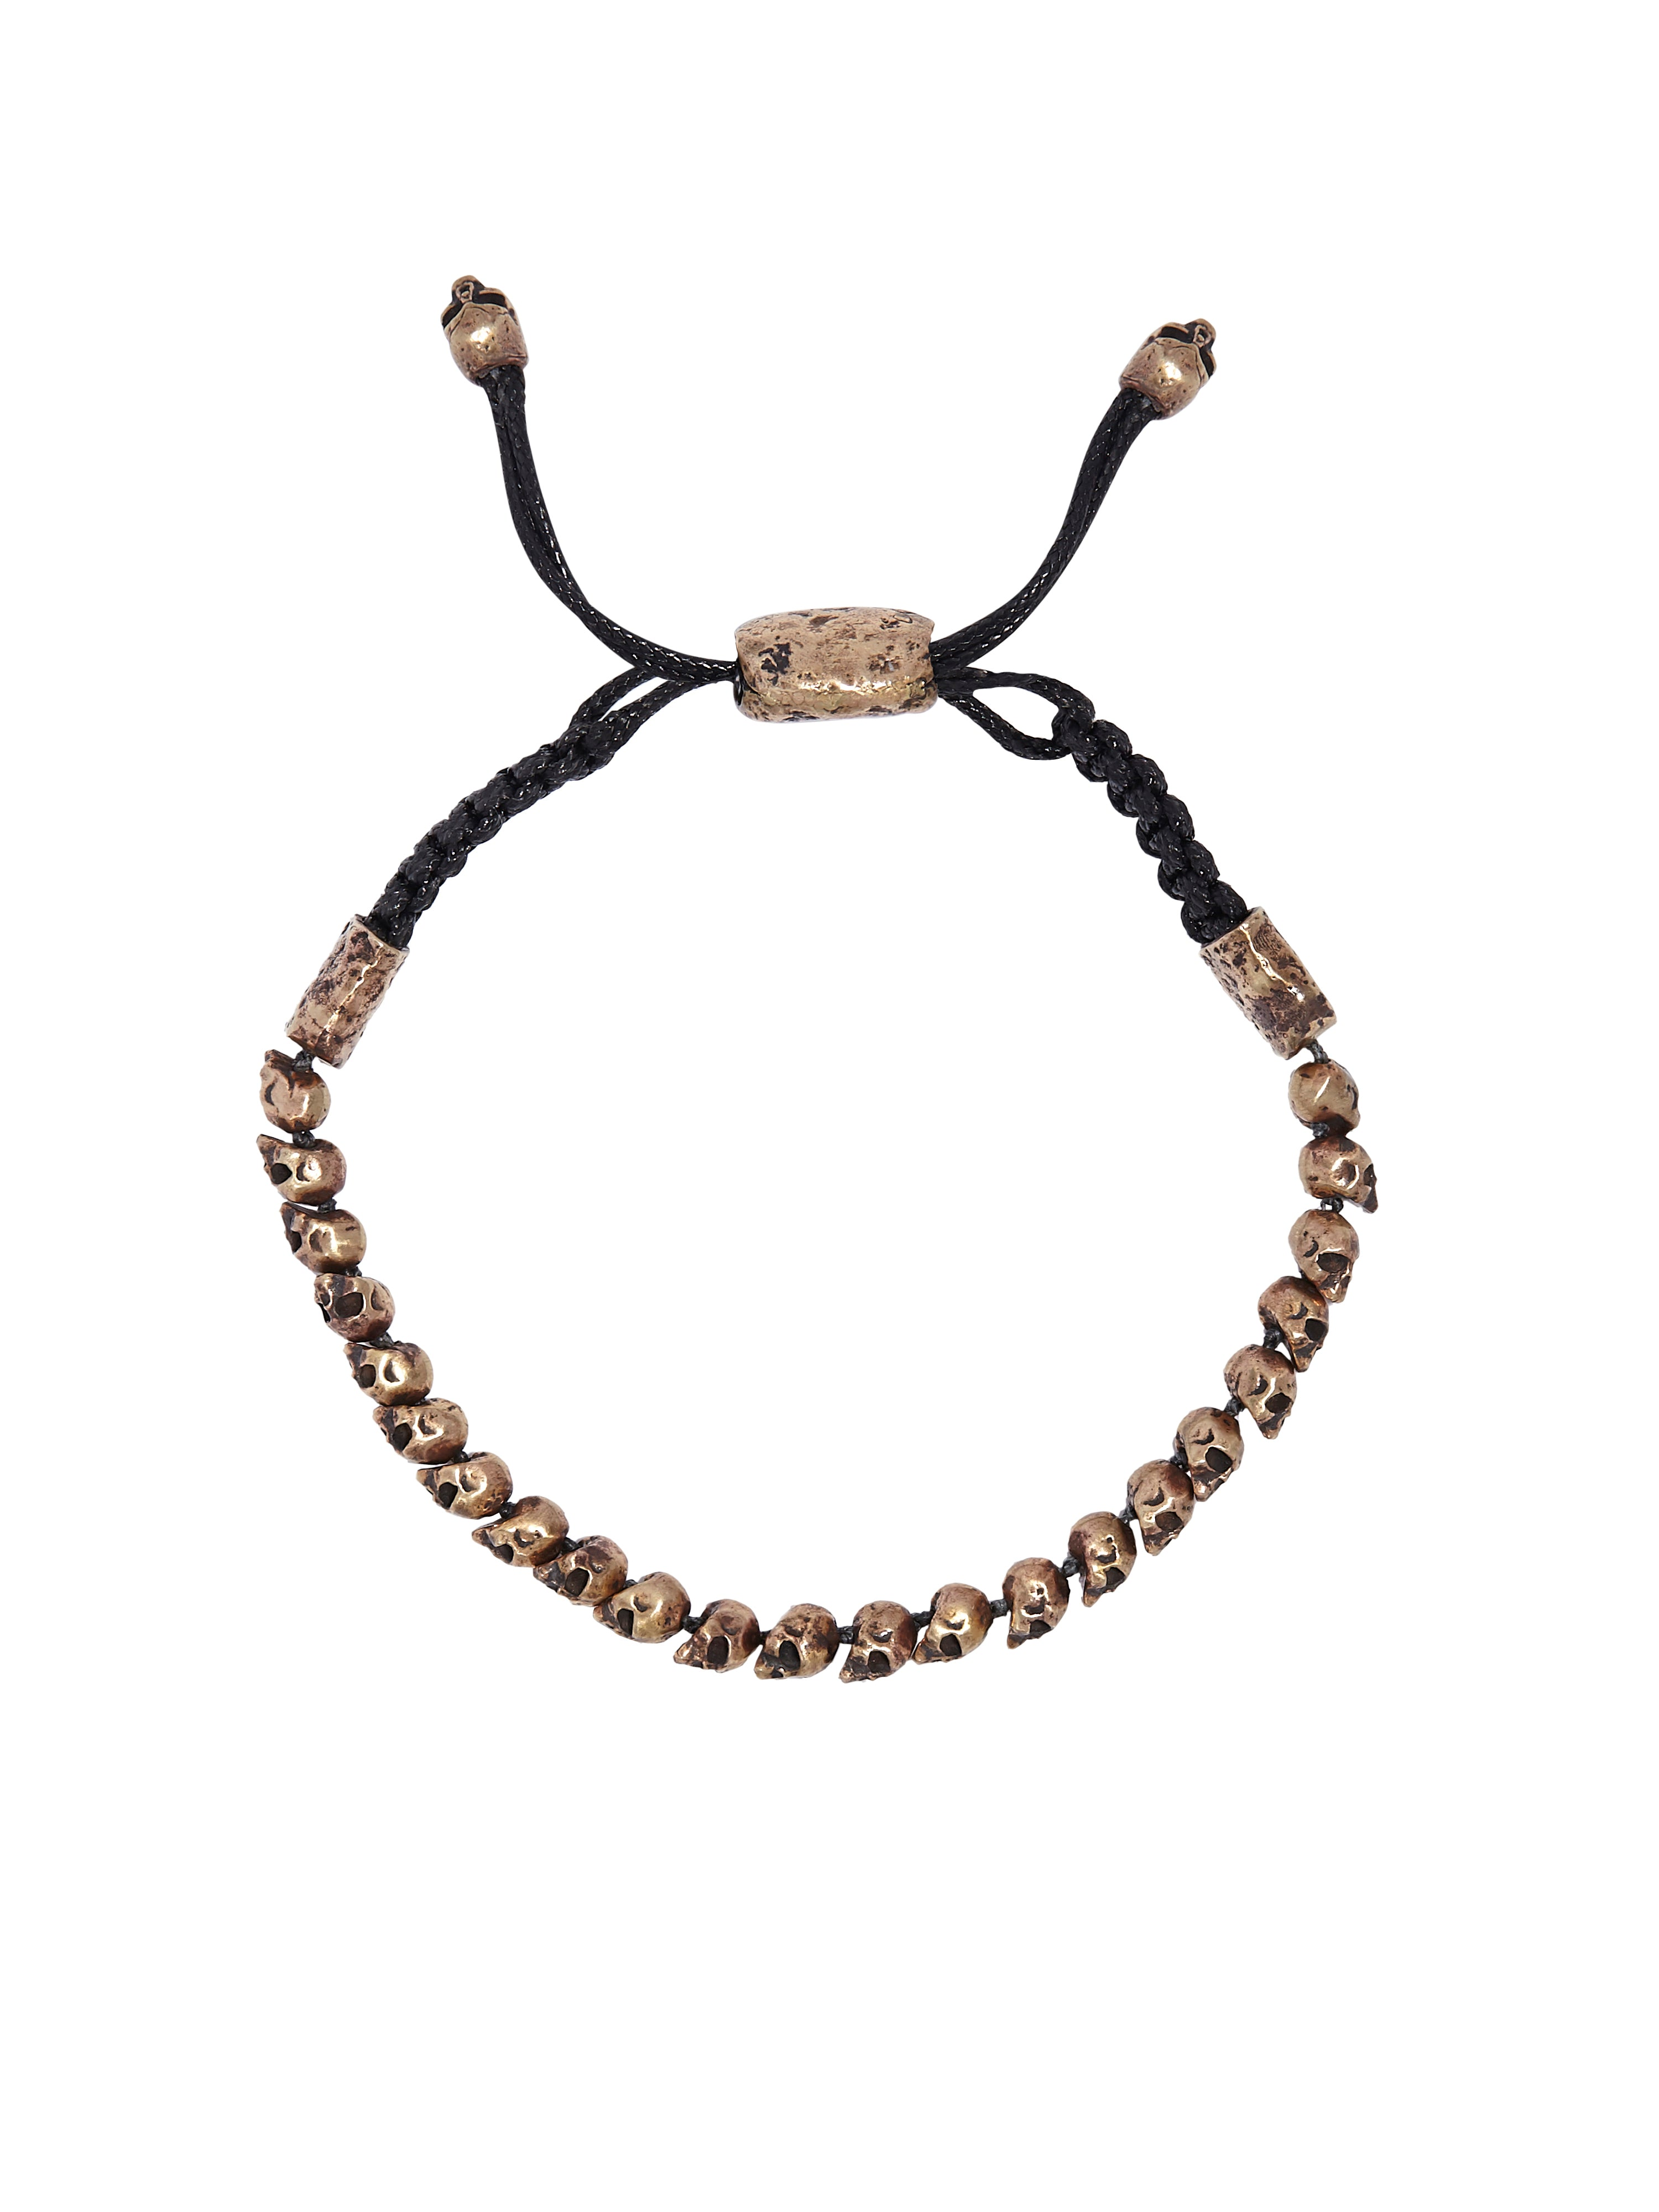 John Varvatos - 24 Brass Skull Beads Adjustable BRACELET